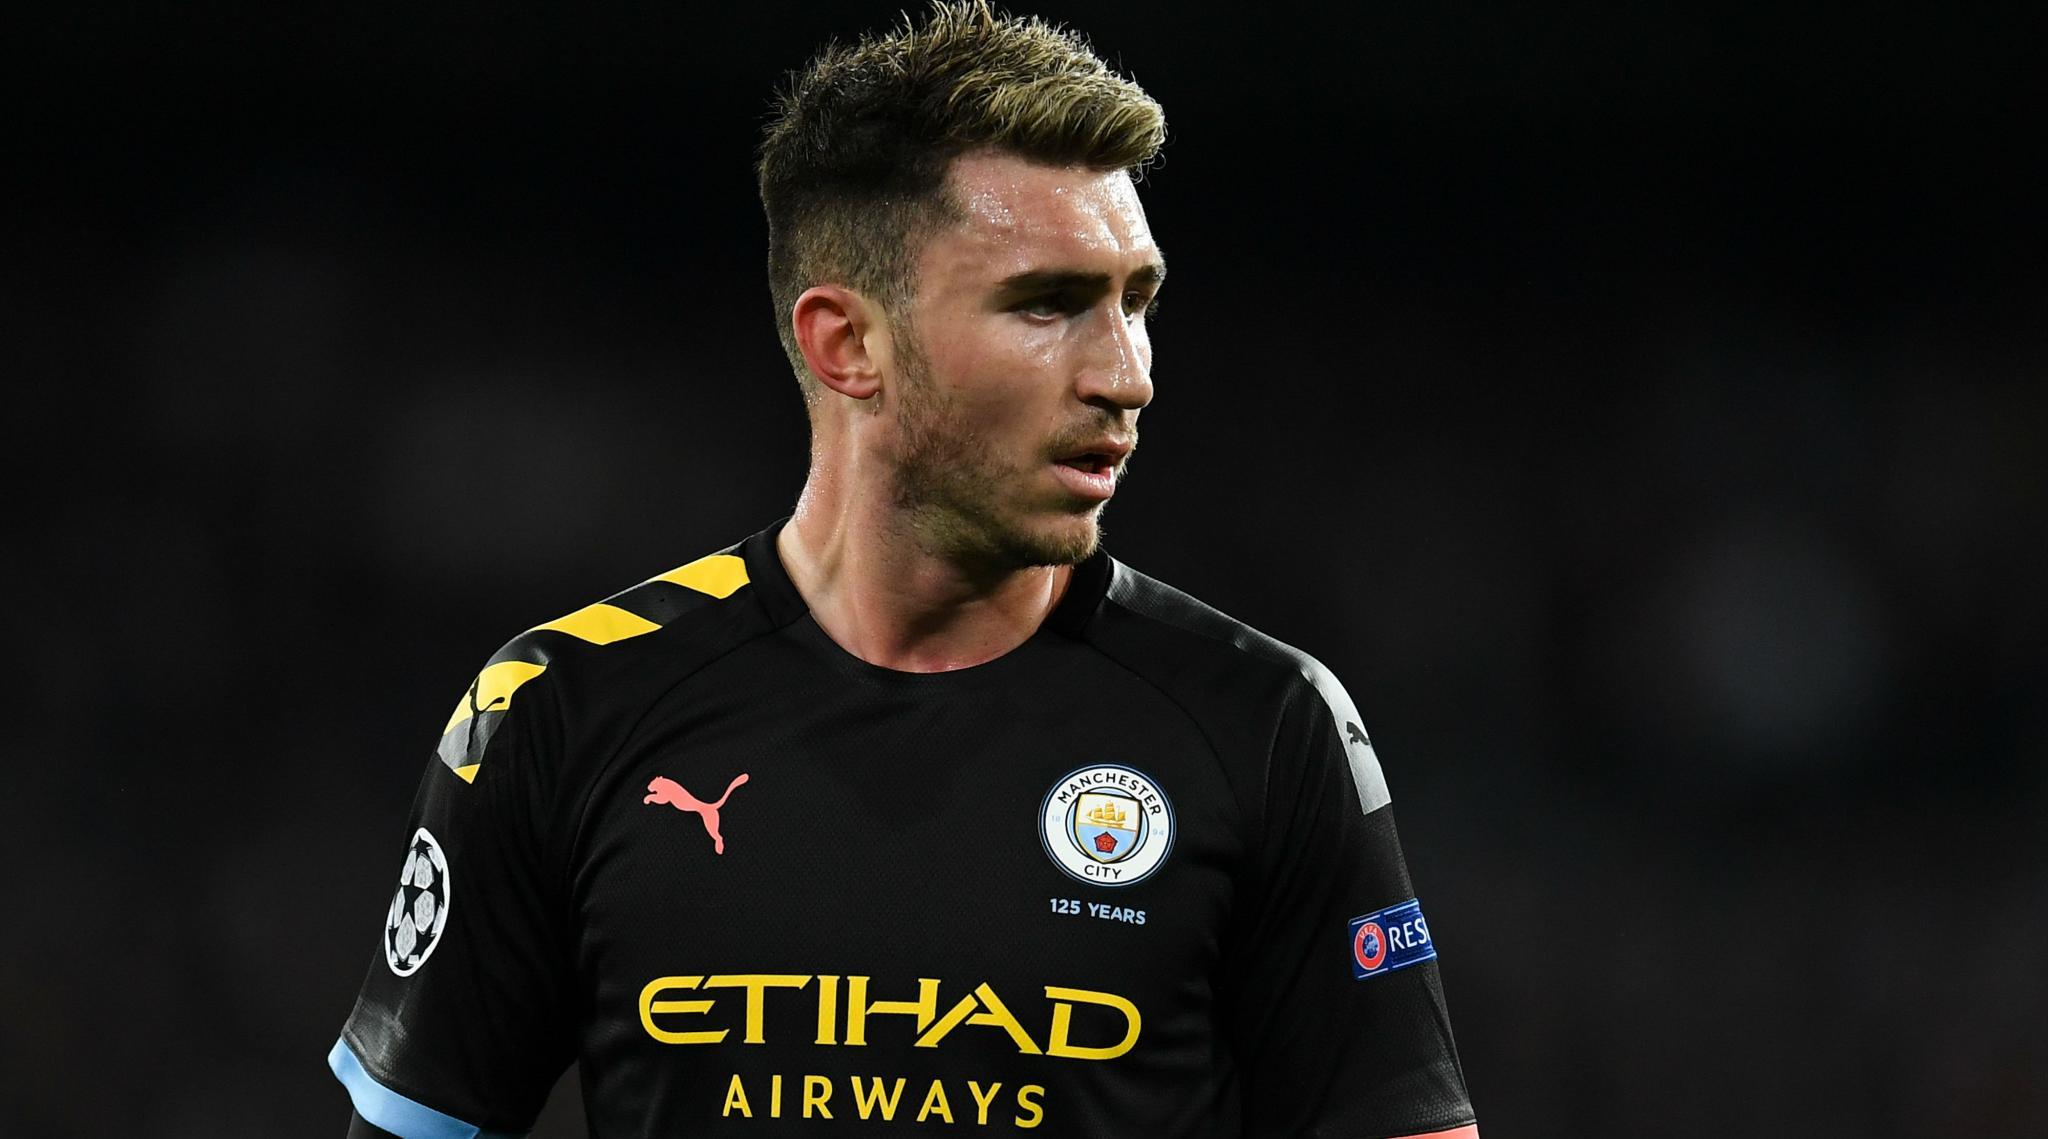 Aymeric Laporte Injury Update: Manchester City Centre Defender Ruled Out for Minimum 3 Weeks, Confirms Manager Pep Guardiola